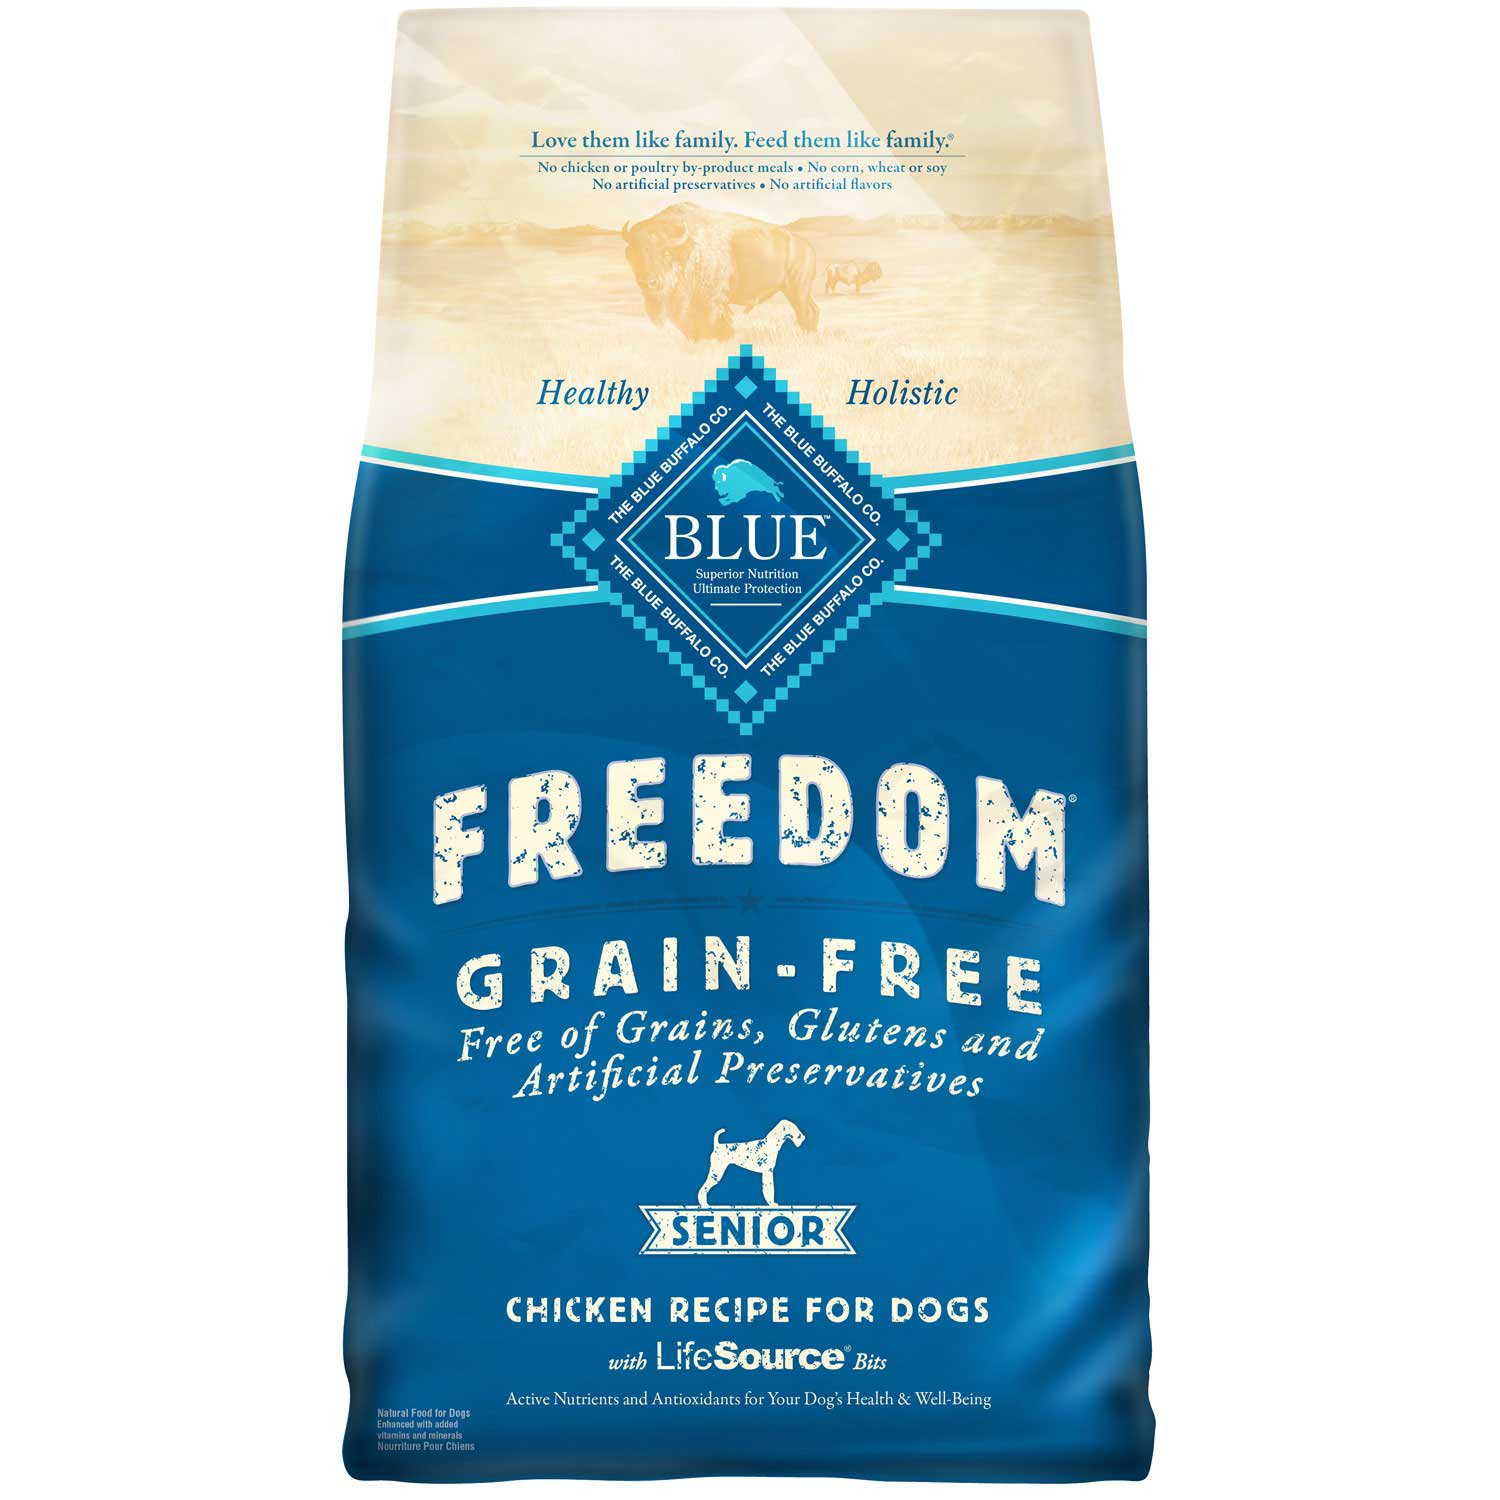 Blue Buffalo Dog Food Coupons Make sure that your dog has the very best in both nutrition and taste with Blue Buffalo dog food. With real meat as the first ingredient in all Blue Buffalo foods, you can be sure that your trusty companion is eating what nature intended.